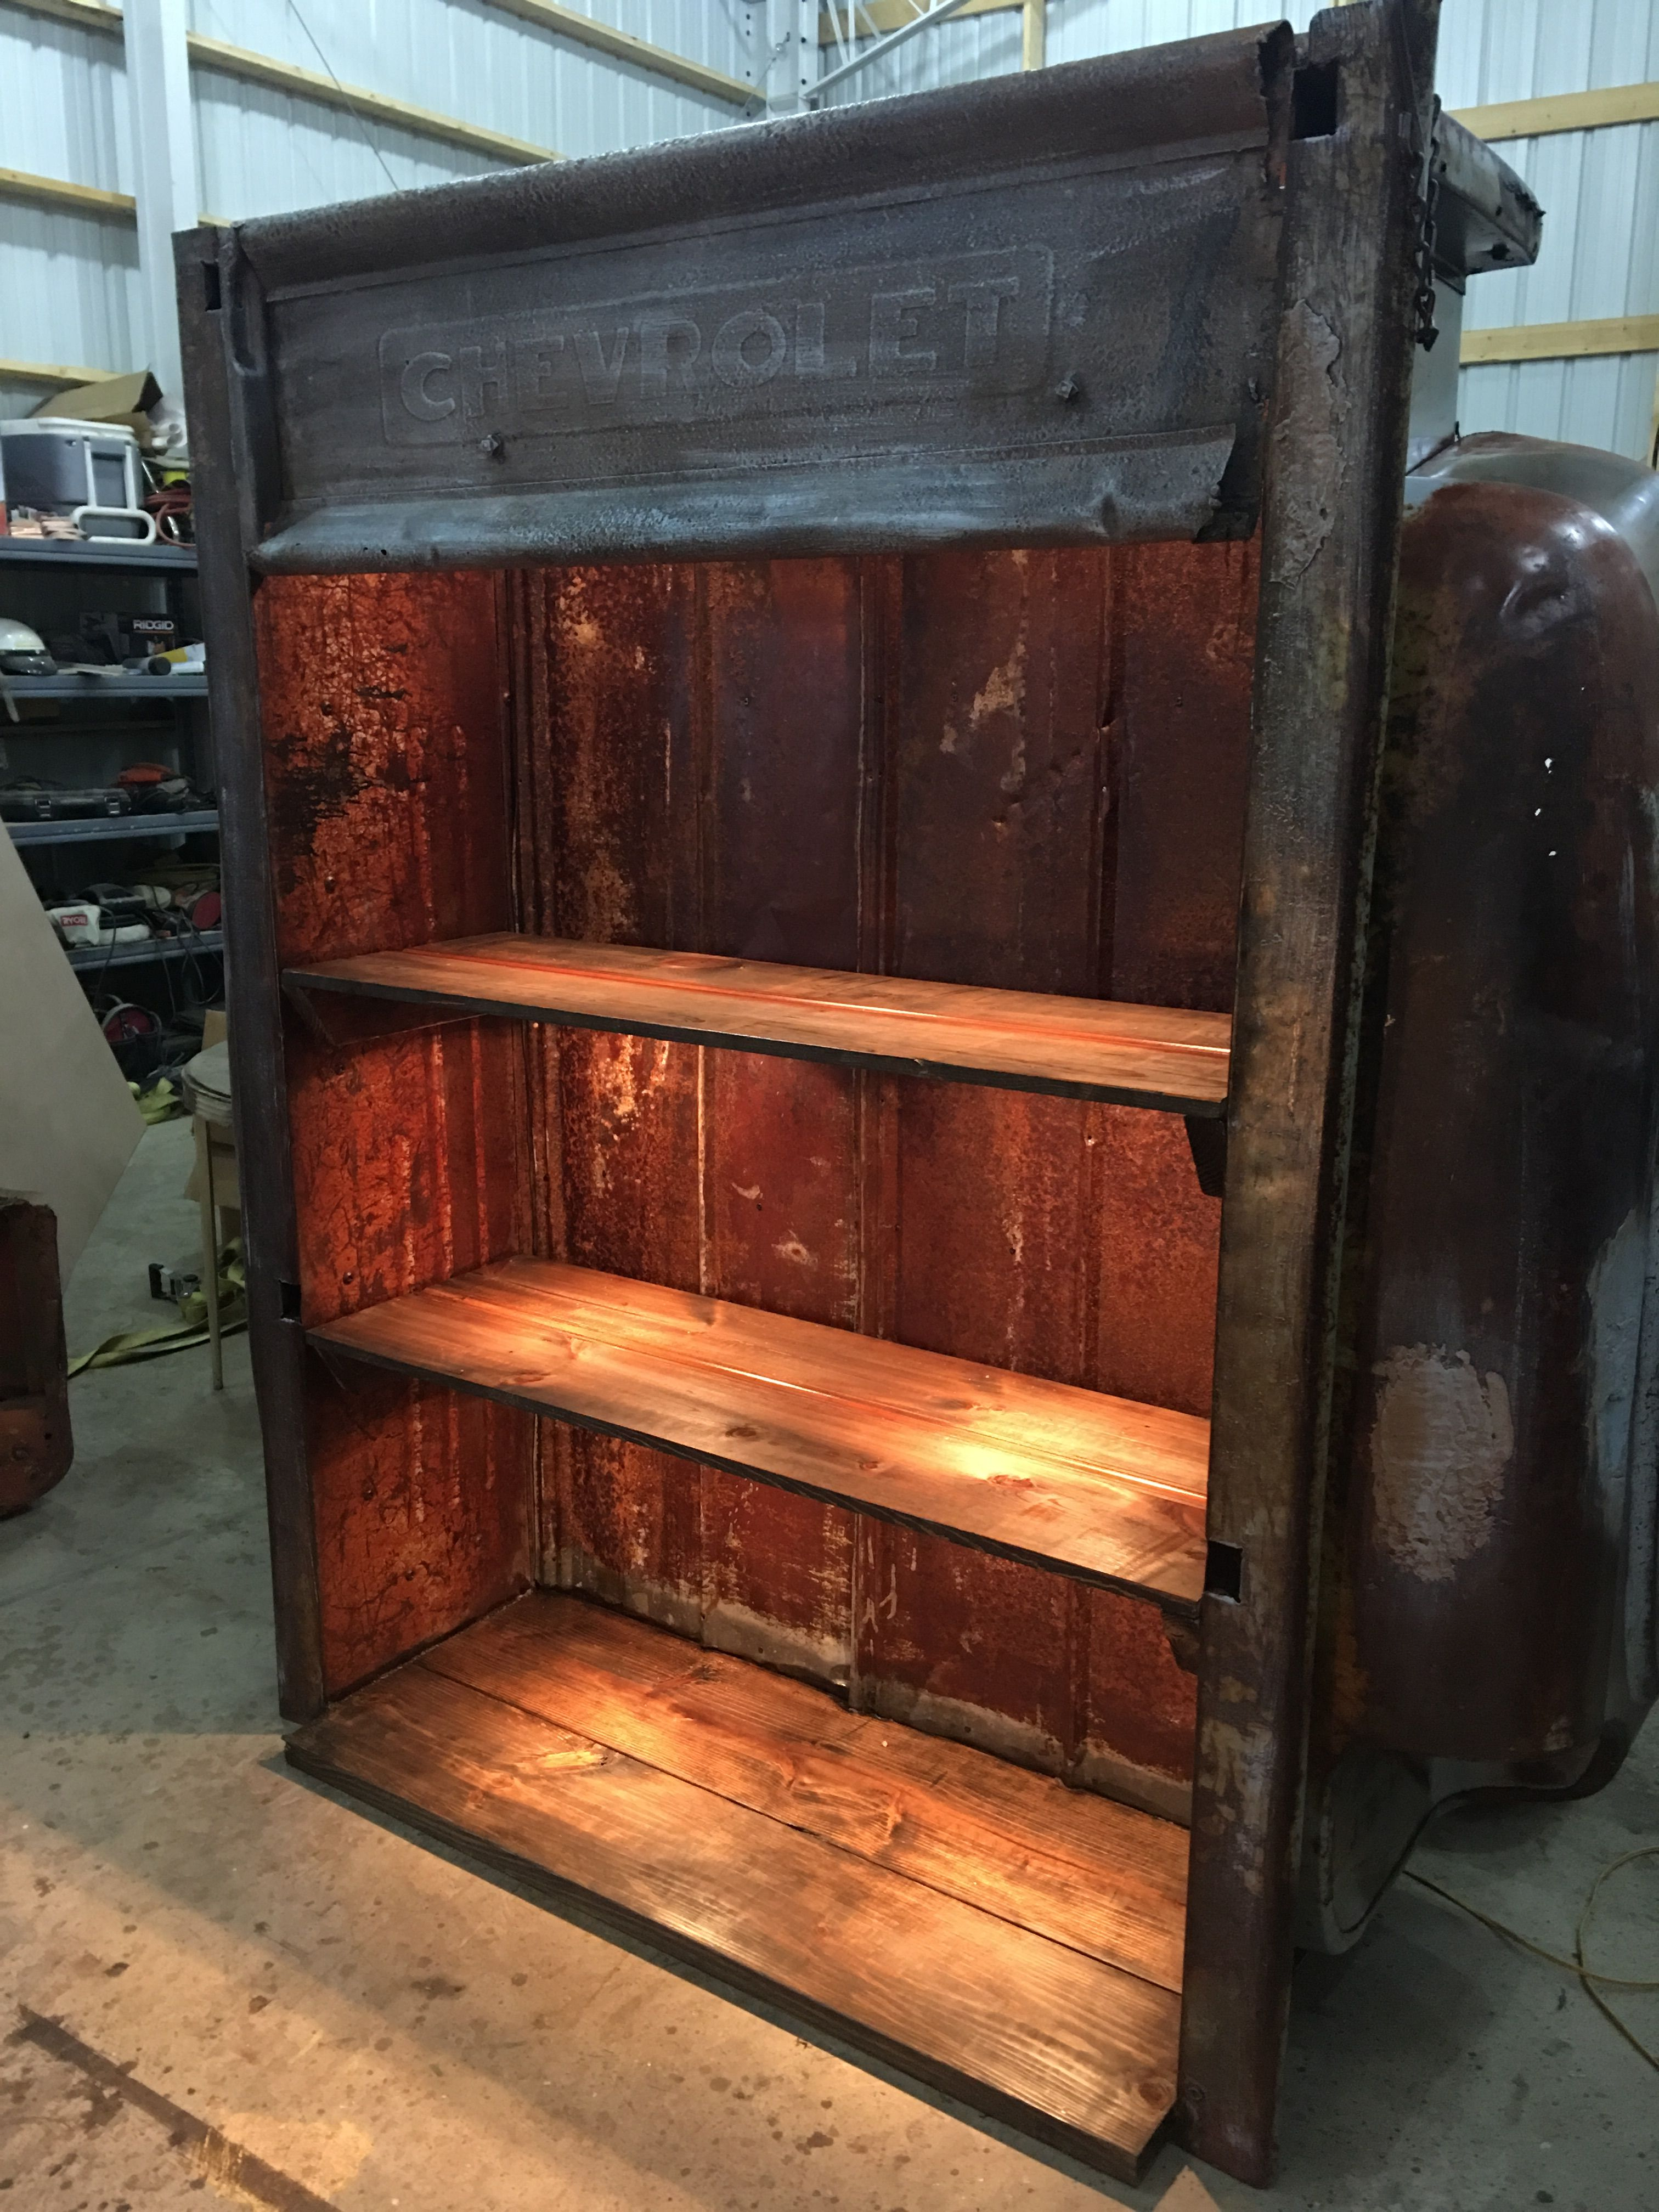 Chevy Truck Bed Repurposed Into Shelve By Southern Boy Primitives